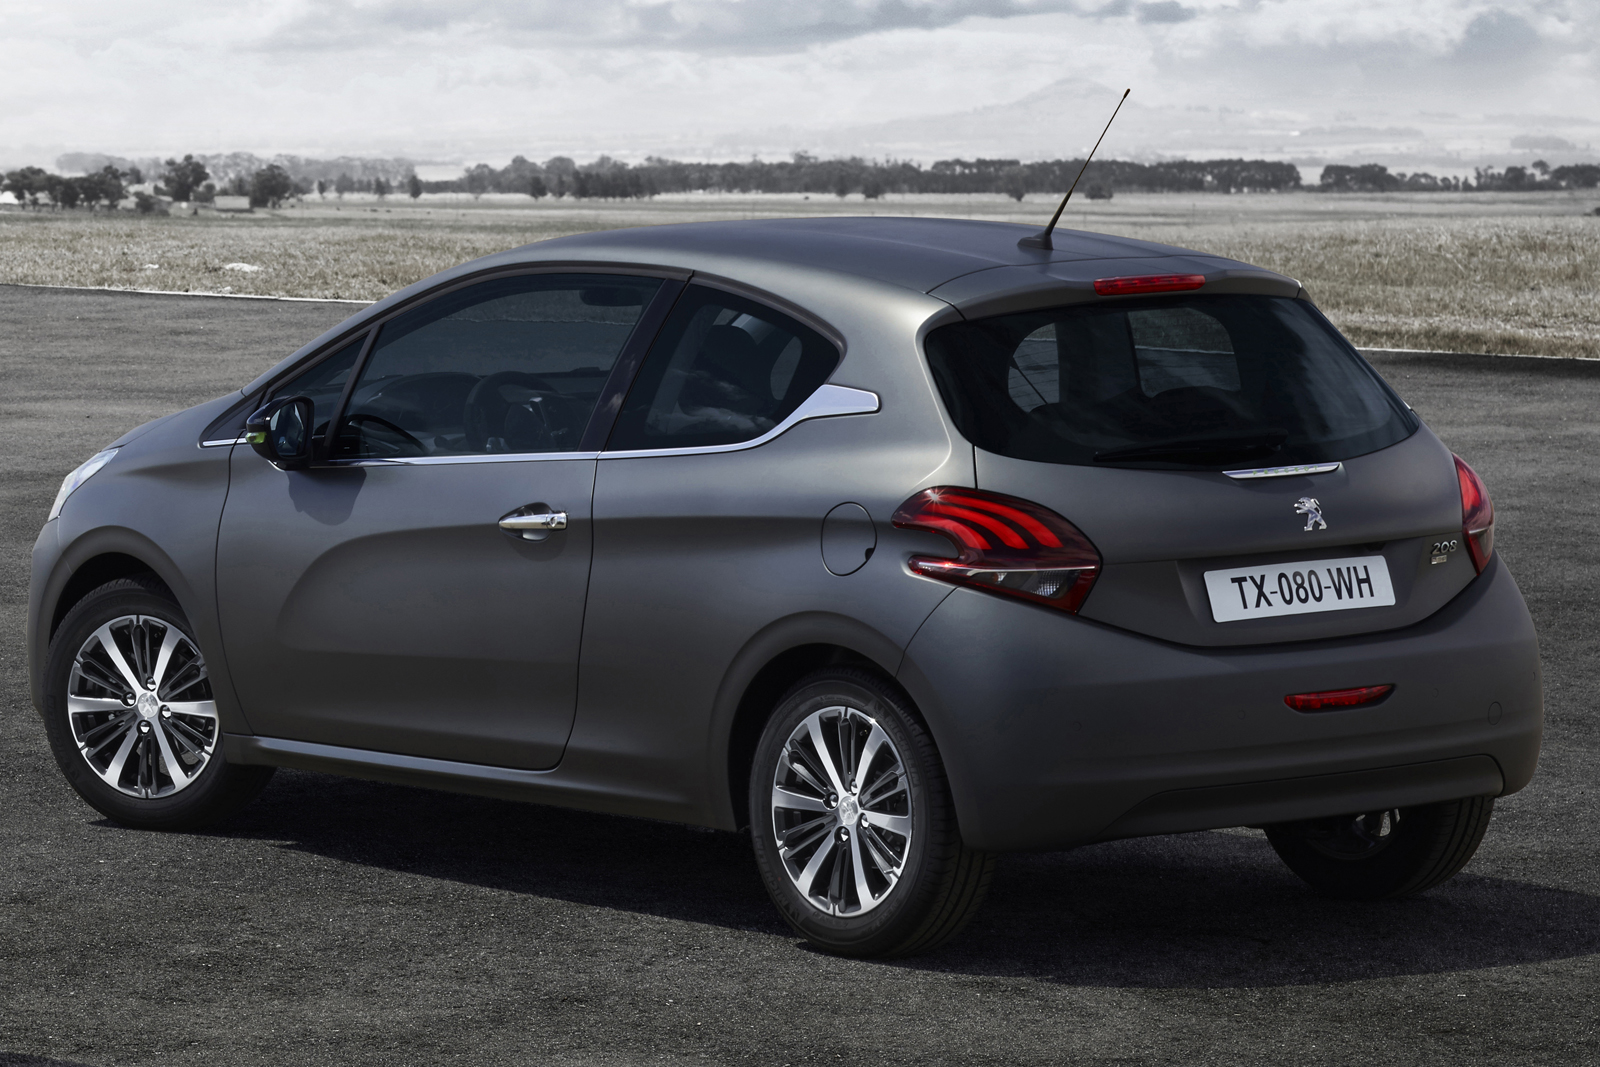 Peugeot 209 2018 >> Peugeot 208 facelift gets world's first textured paint Image 321936